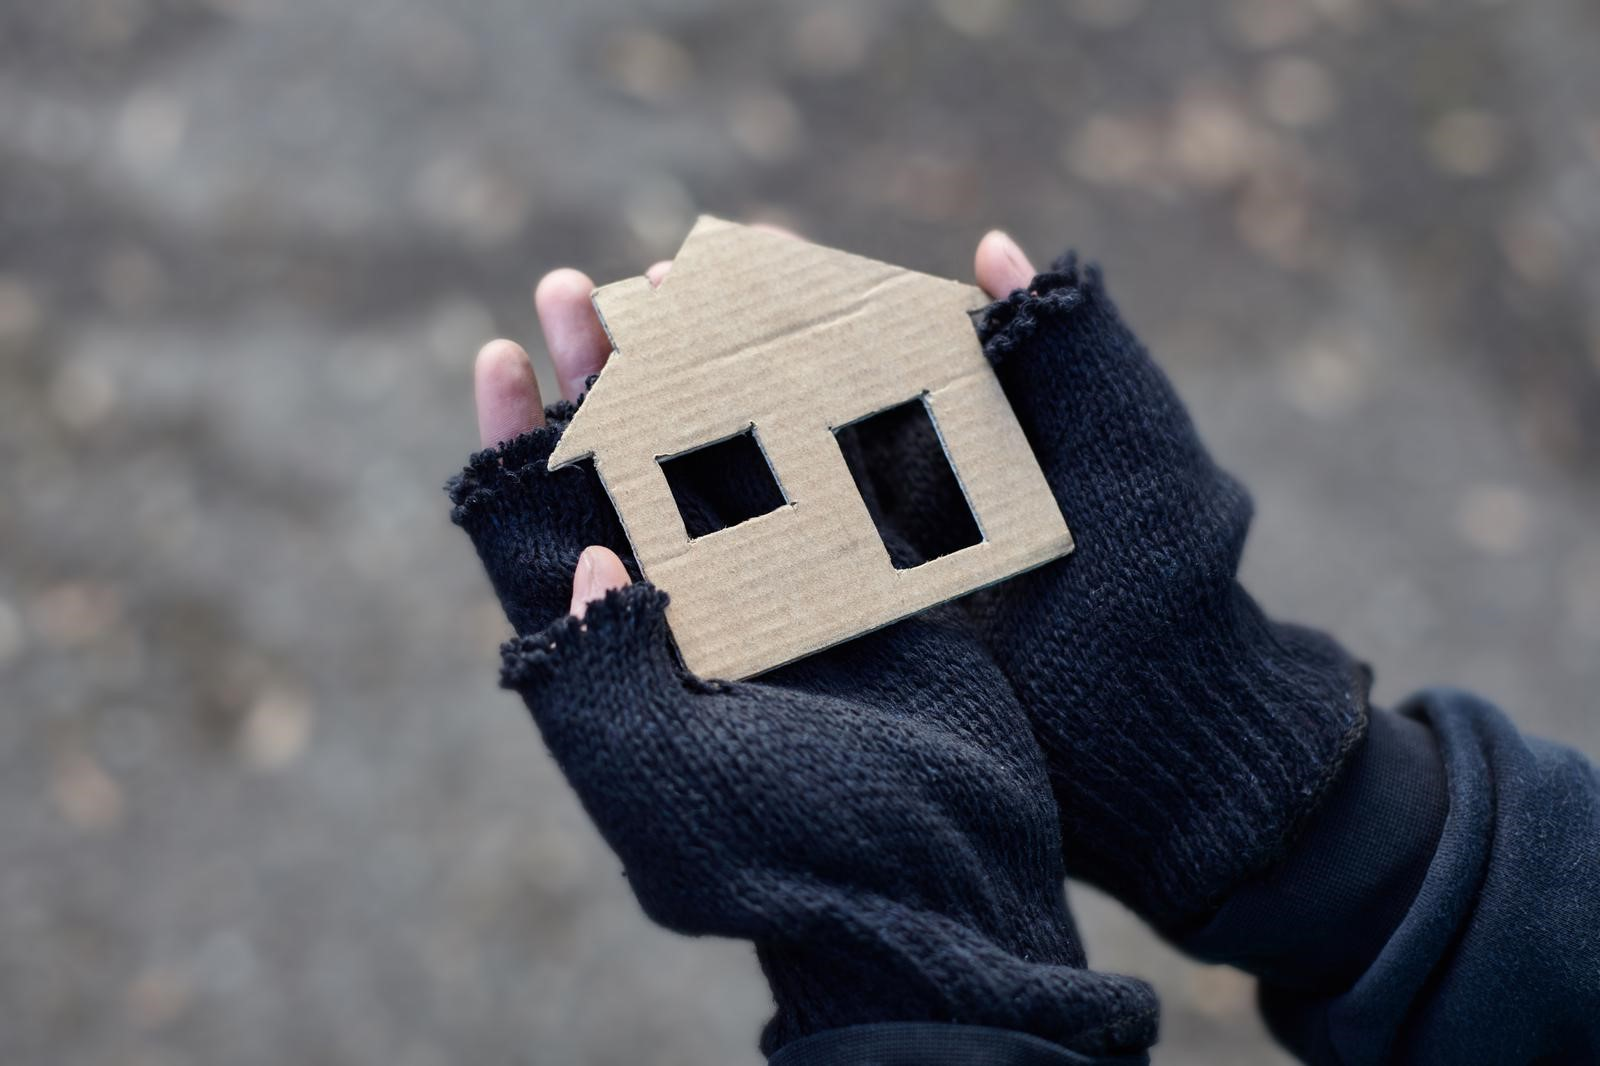 Gloved hands holding cardboard house